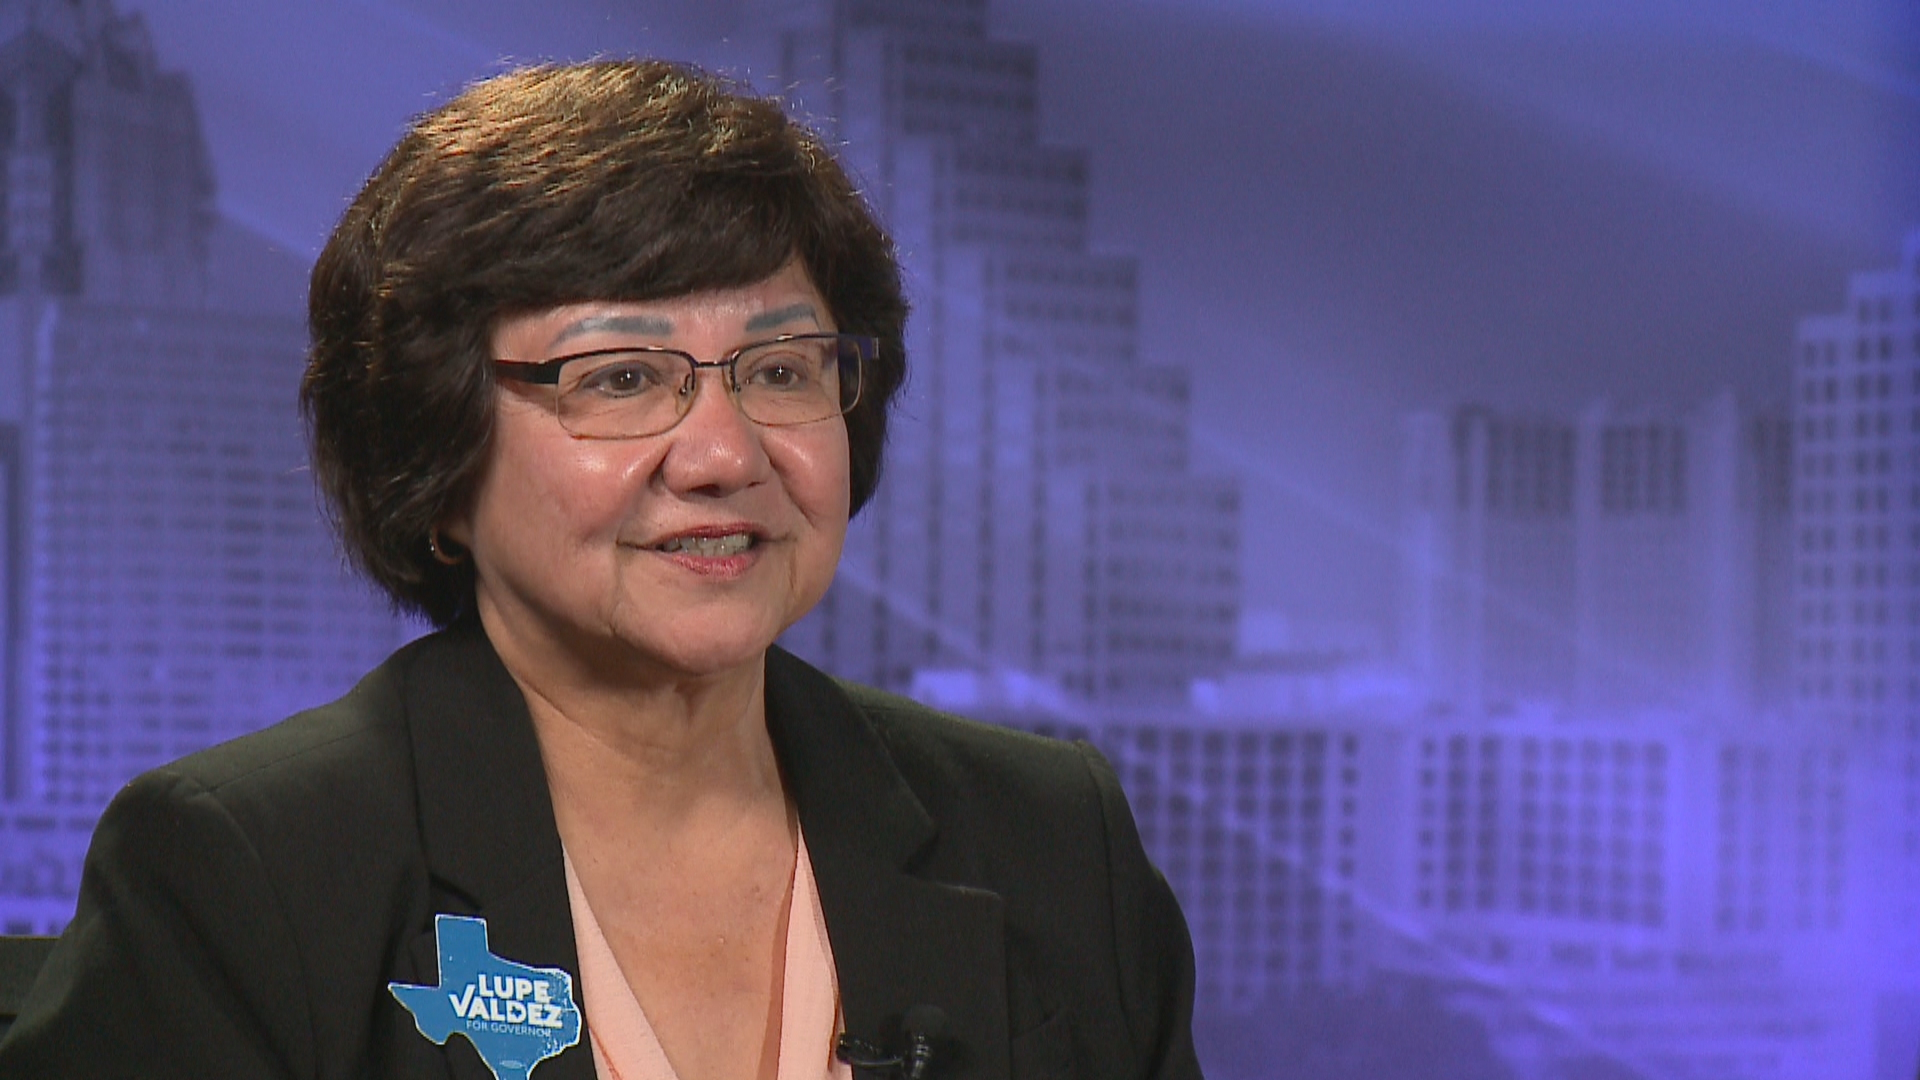 Lupe Valdez interview